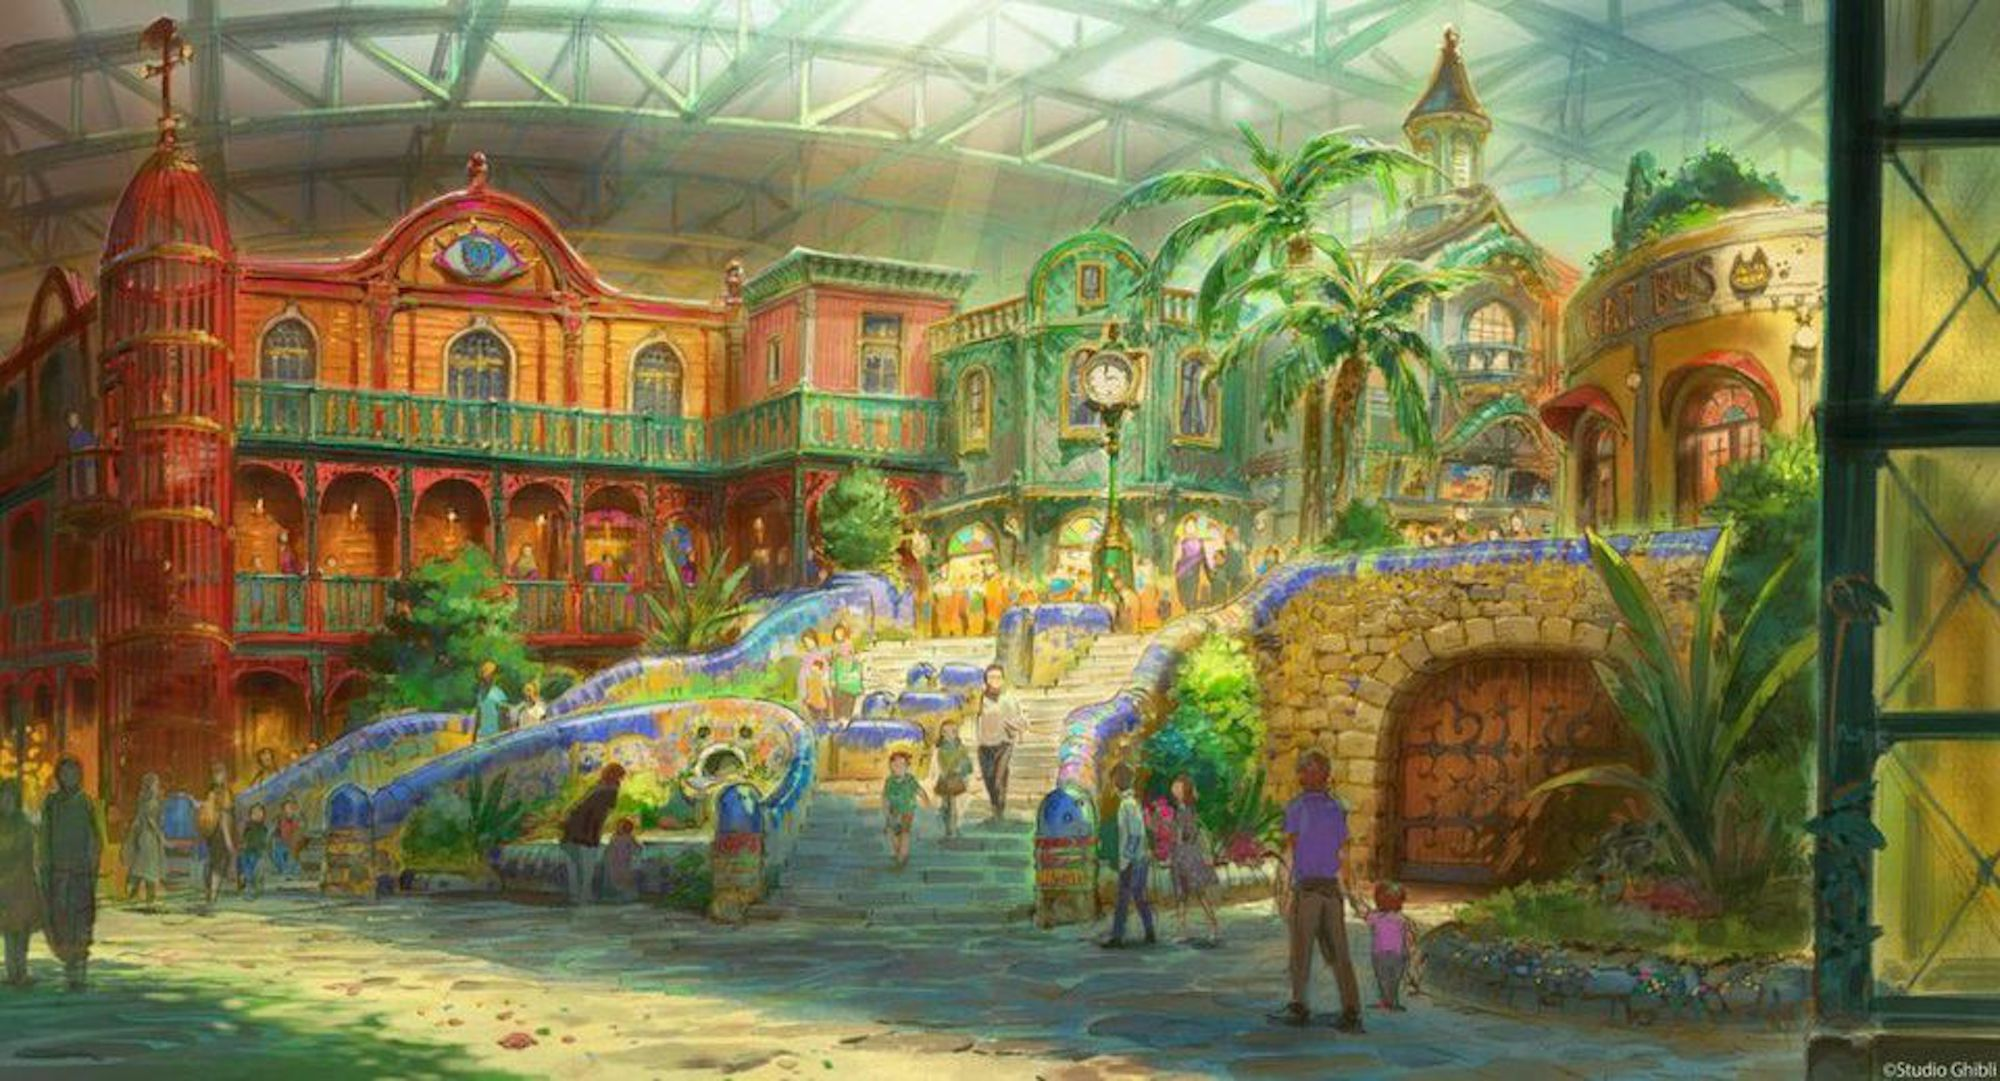 New Concept Art for the Studio Ghibli Theme Park Just Dropped